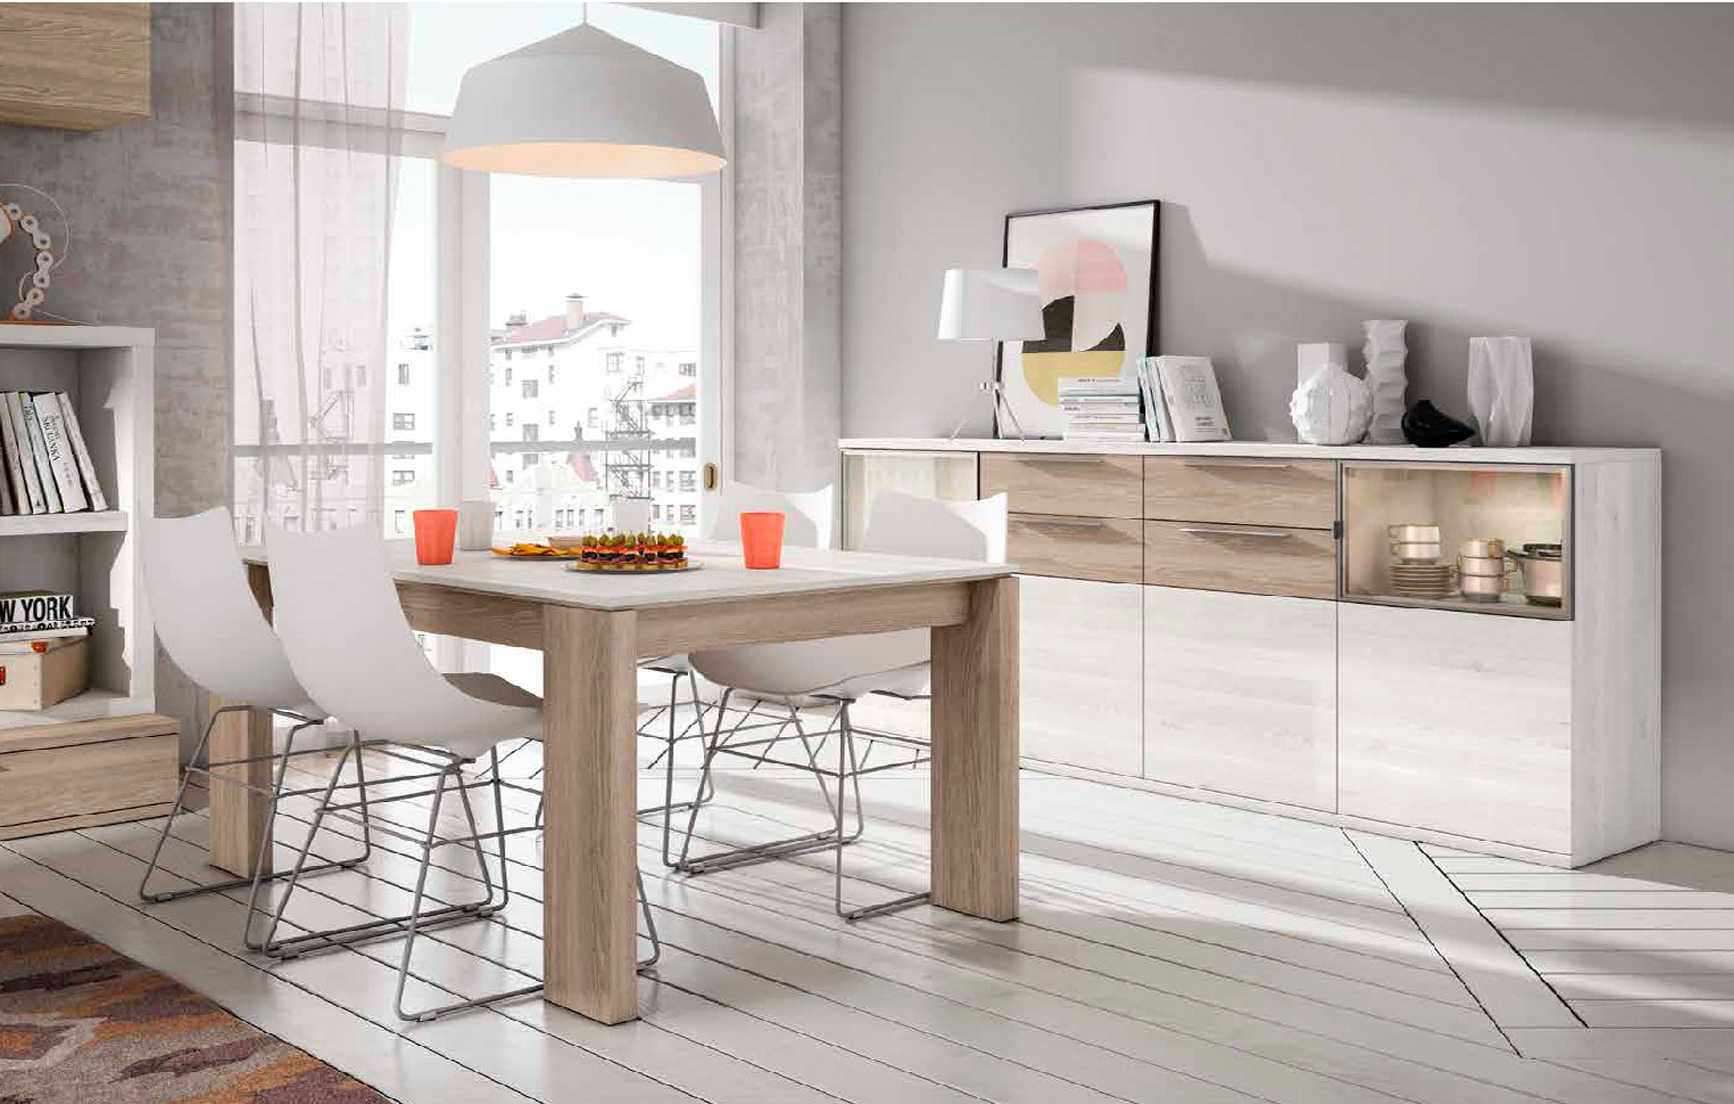 Aparador mueble de sal n color sable y blanco nordic - Mueble salon blanco ...